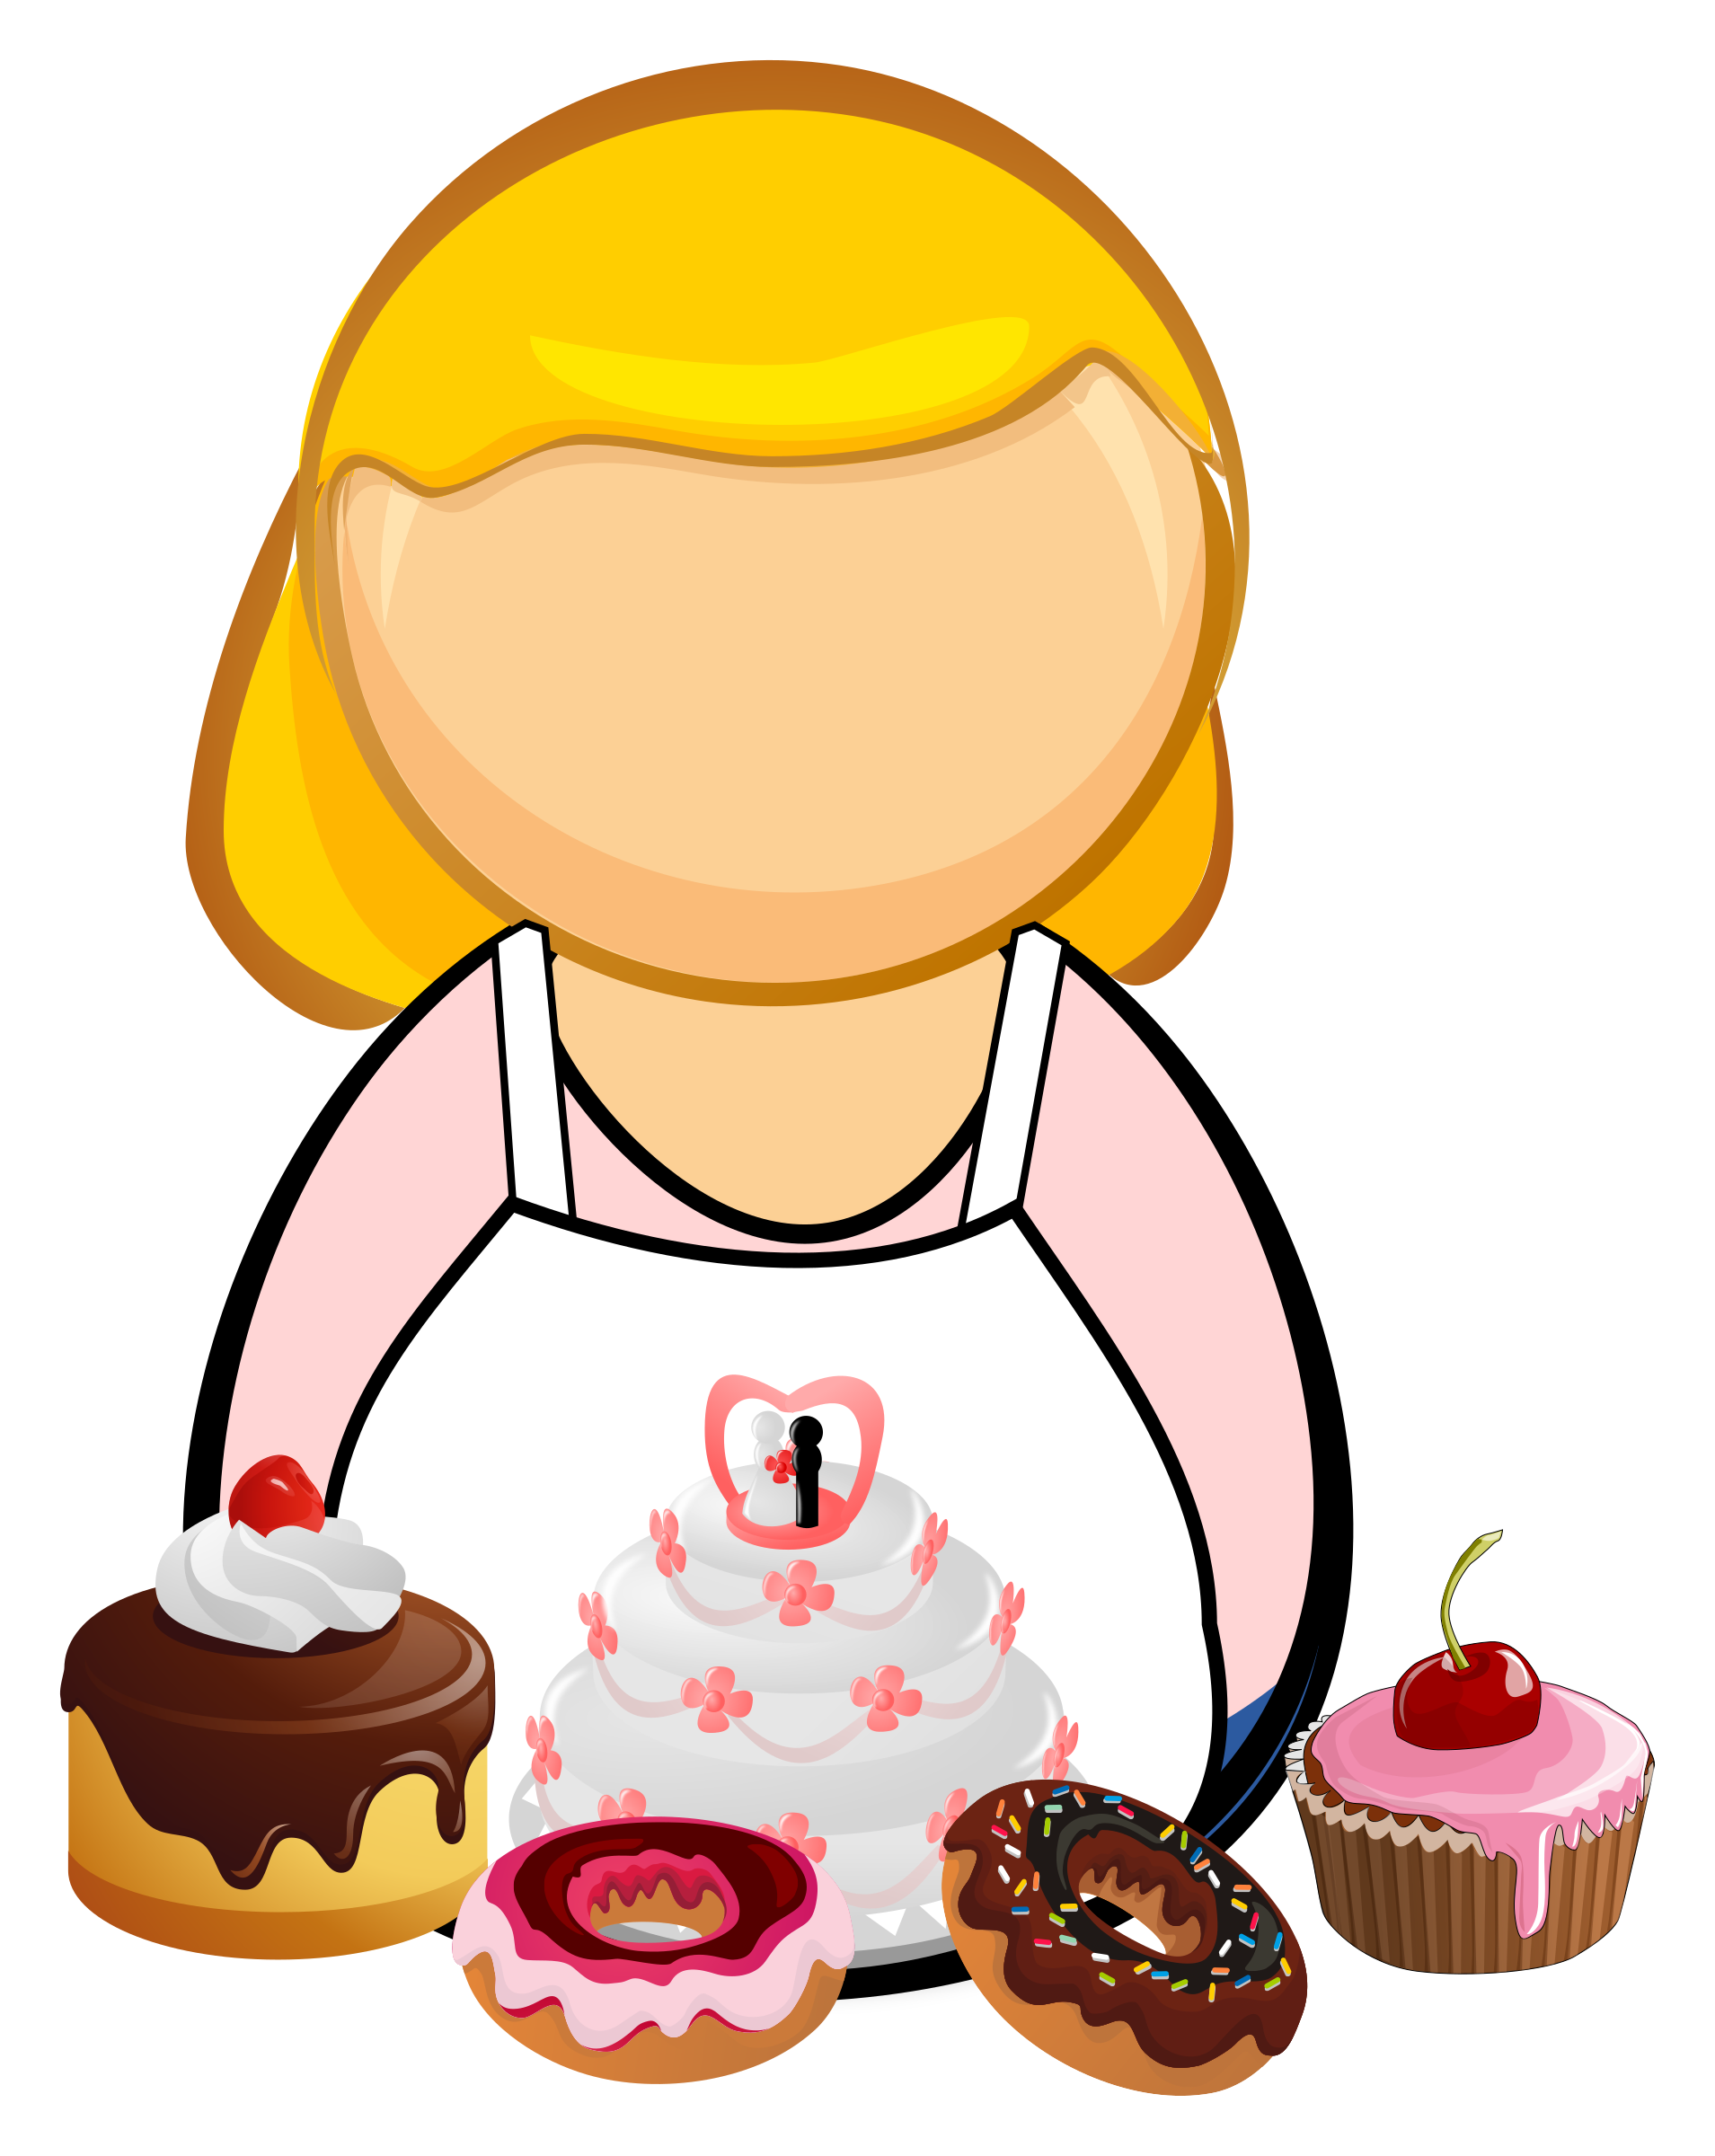 Confectioner, pastry-cook by Juhele